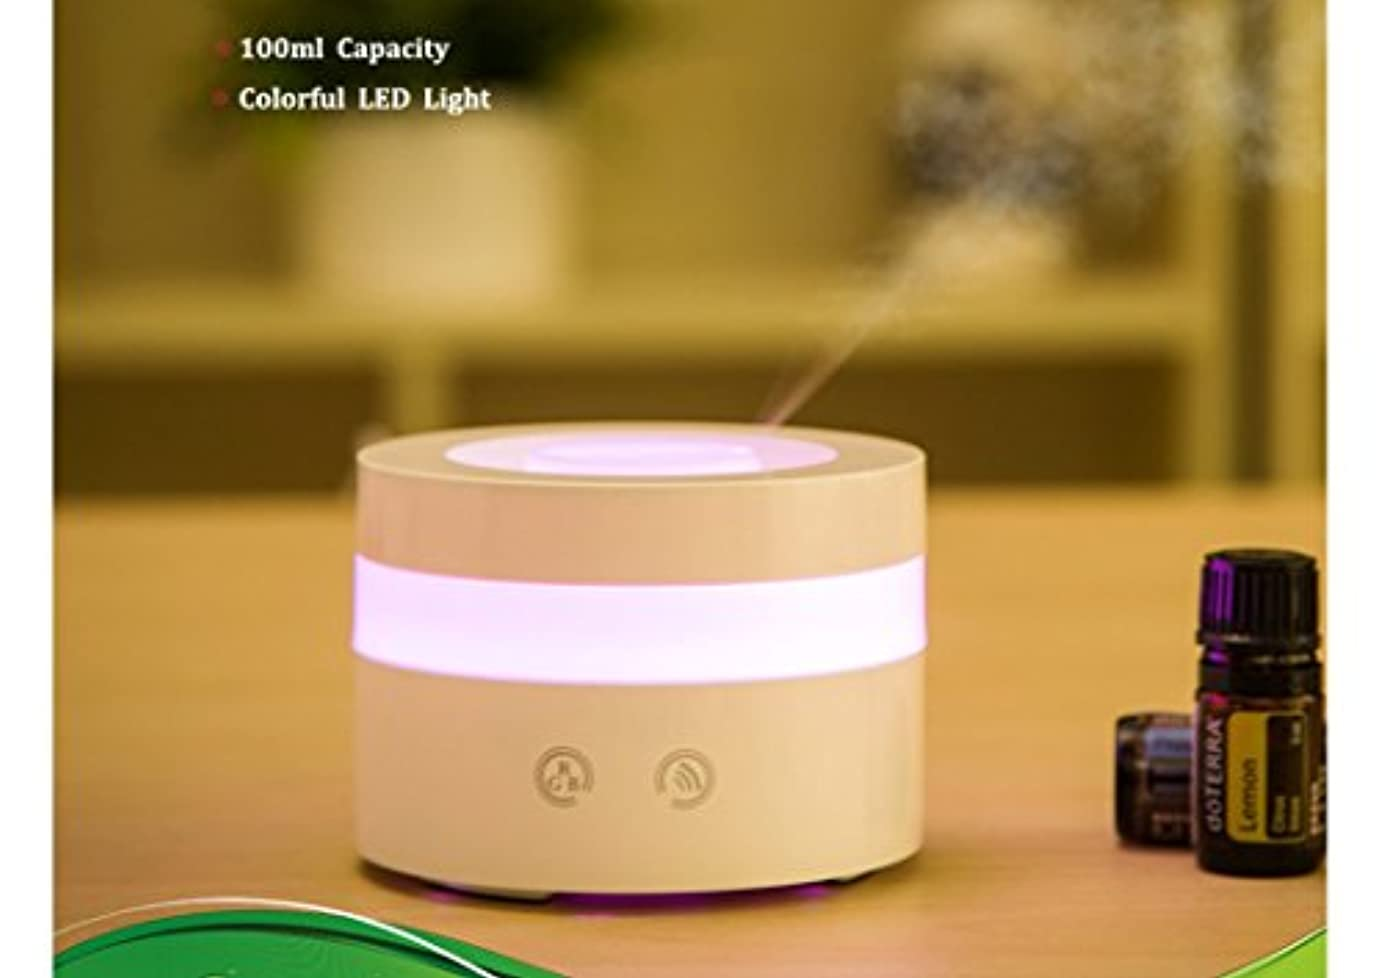 かけがえのない望ましいパラナ川Actpe Portable Travel-size USB 100ml Aroma Essential Oil Diffuser Ultrasonic Air Humidifier Ultrasonic Cool Mist...